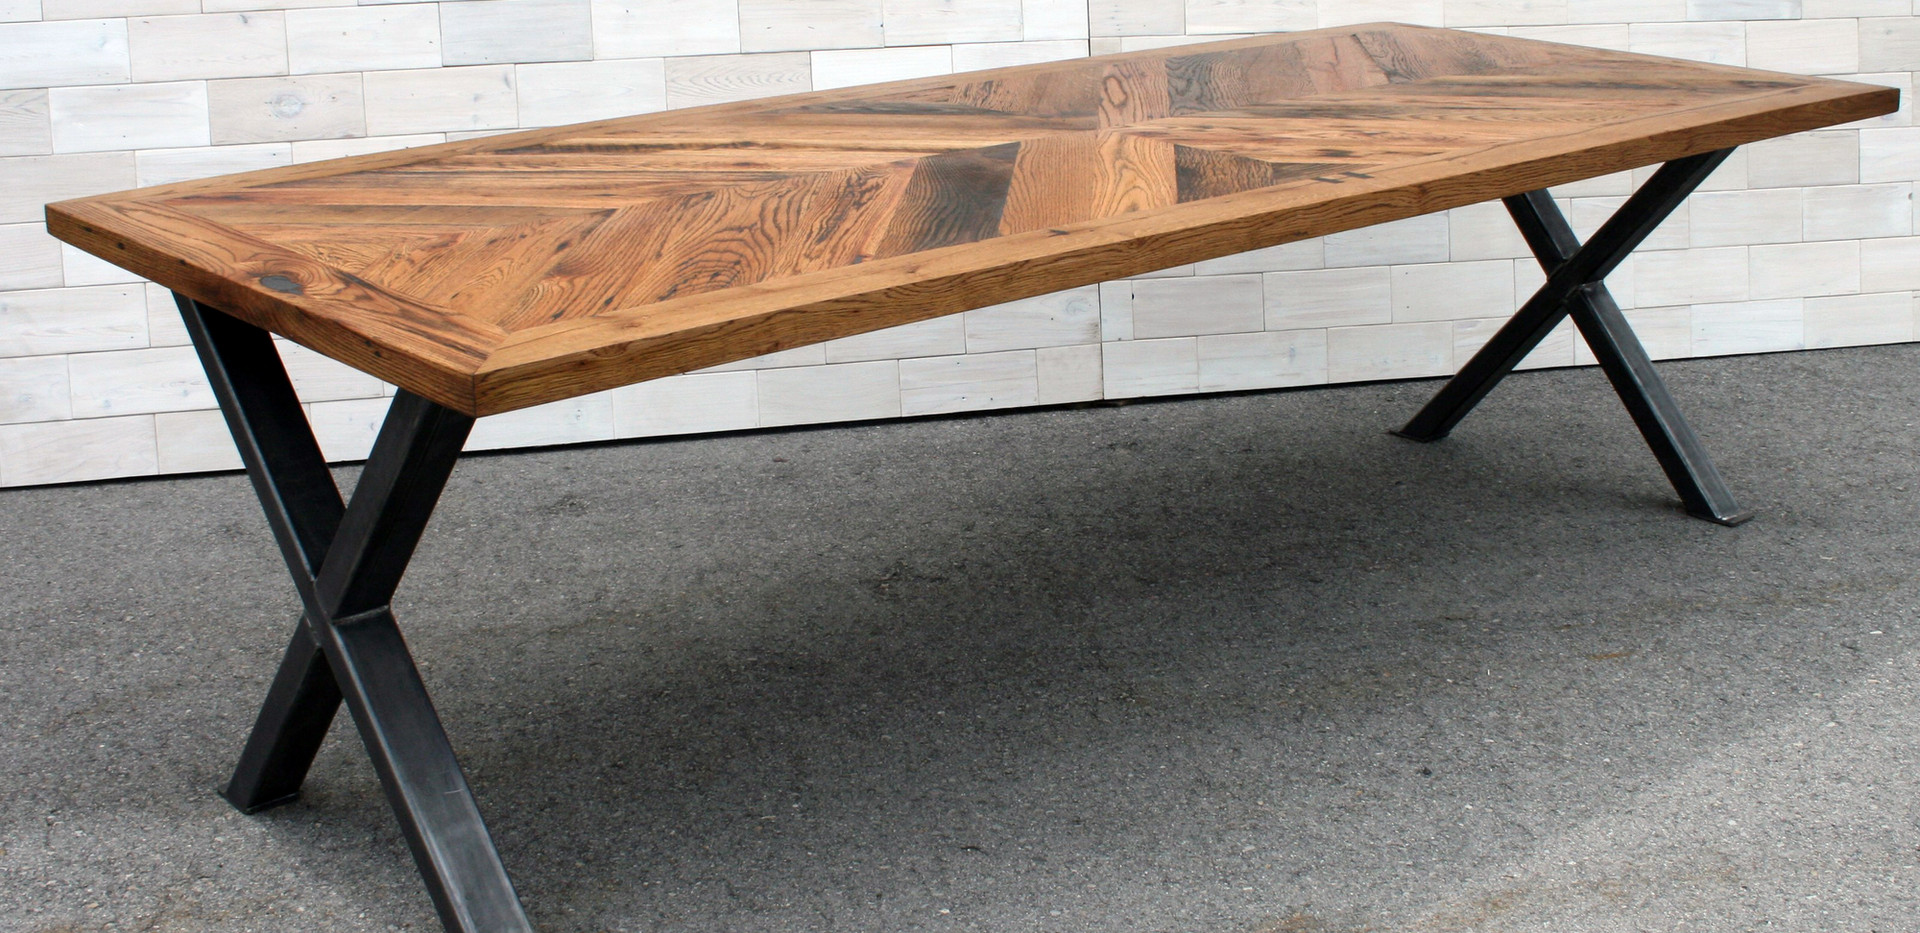 Reclaimed Oak Dining Table with Steel X Legs